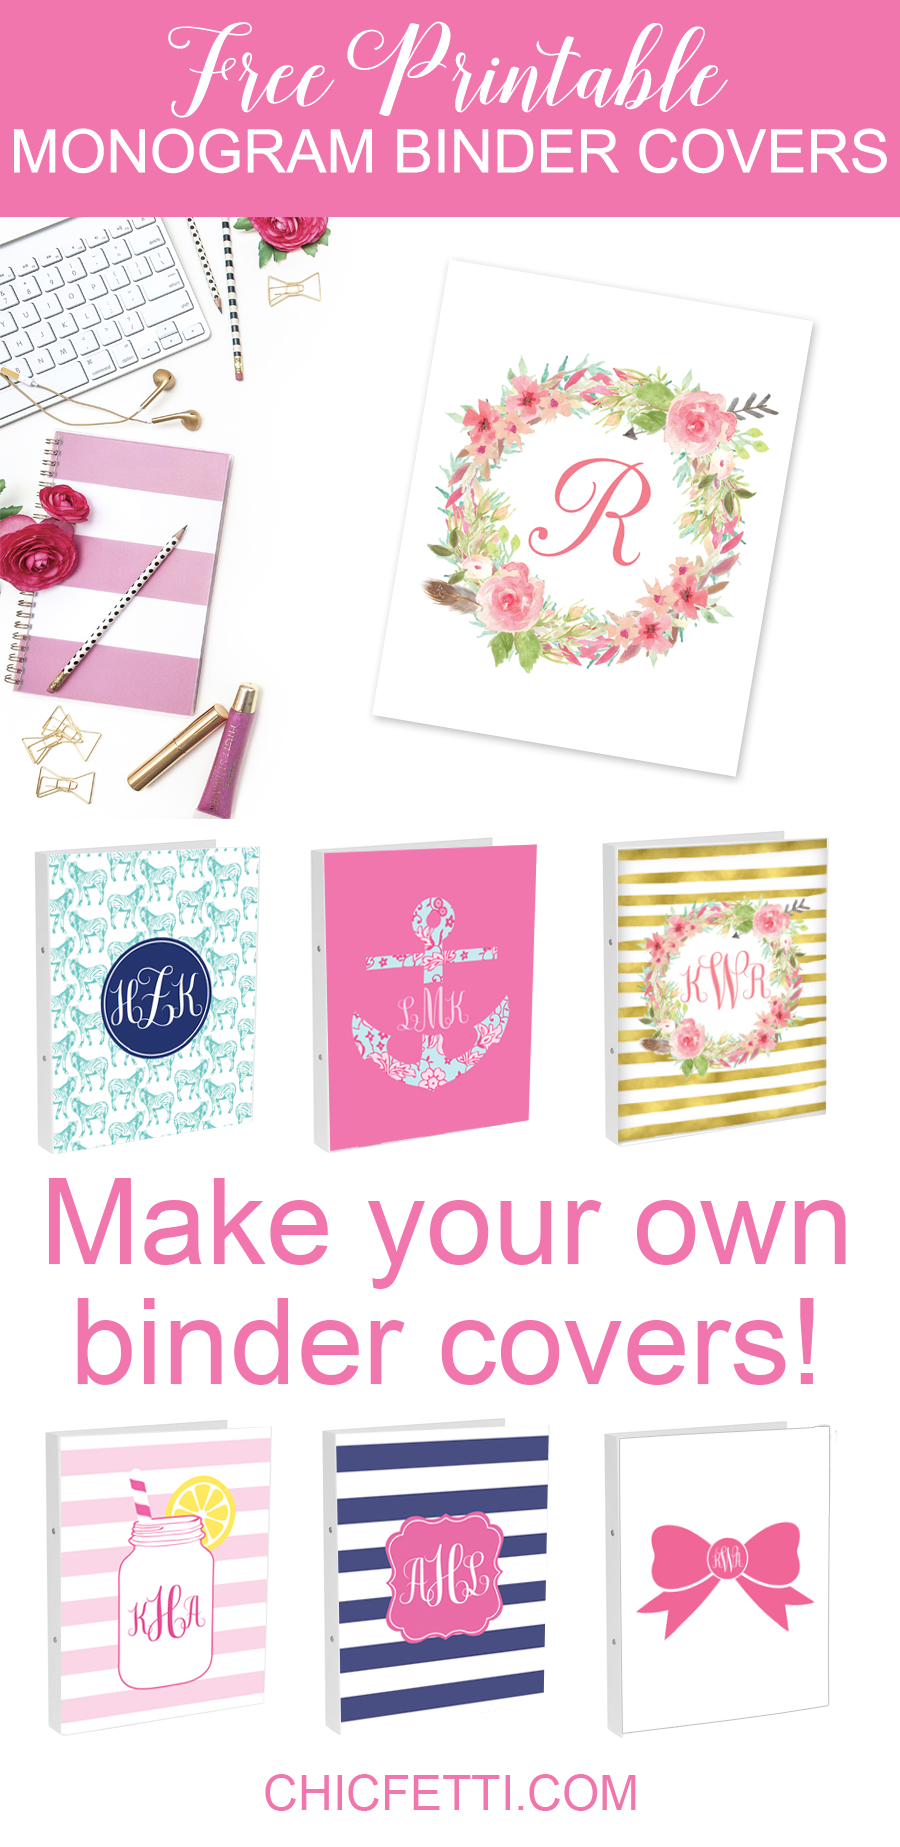 Diy Monogram Binder Covers Using Free Monogram Templates | Free - Free Printable Monogram Binder Covers